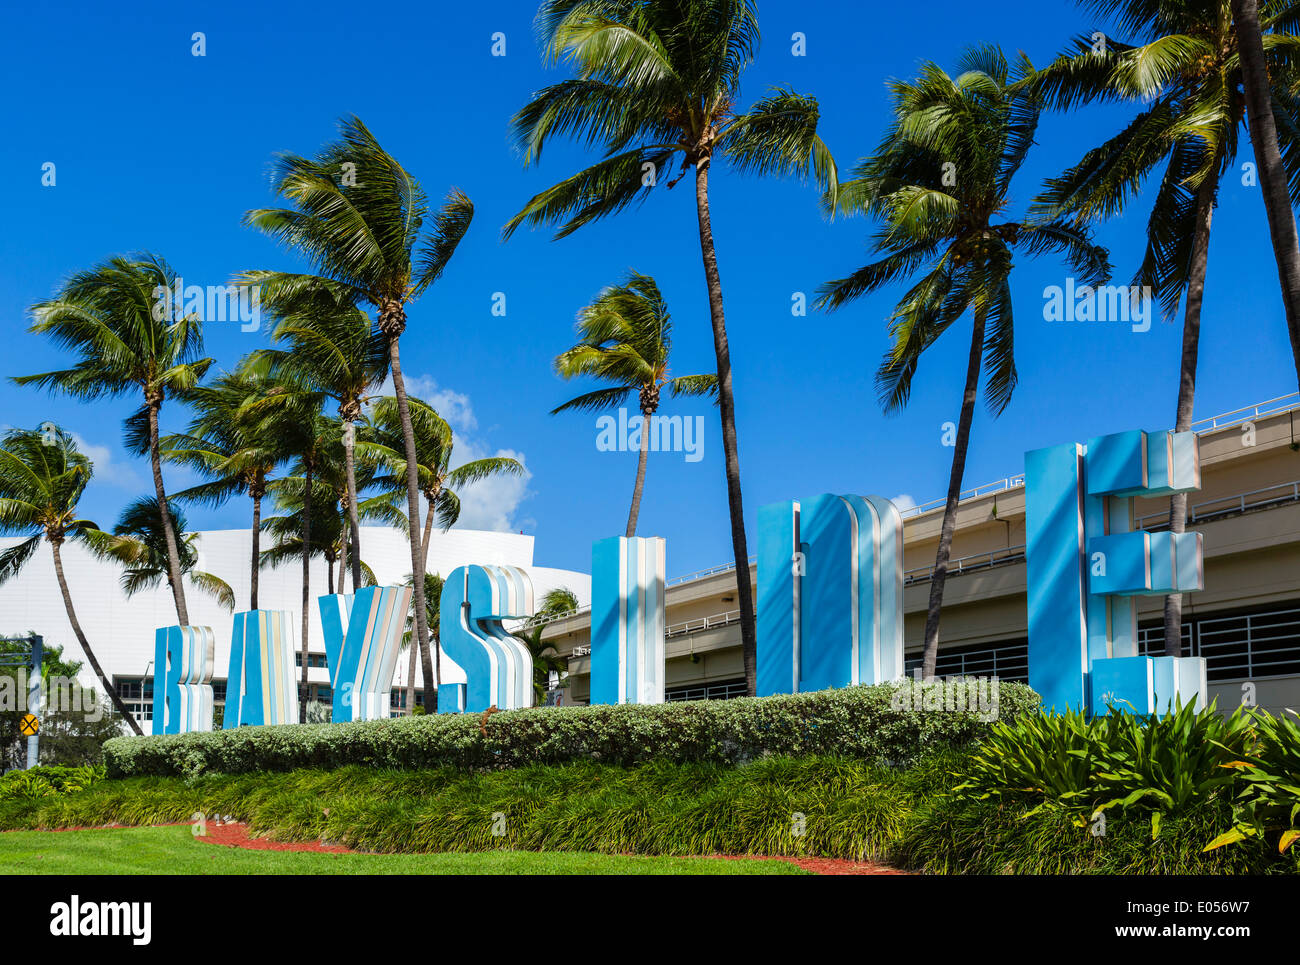 Sign outside Bayside Marketplace in downtown Miami, Florida, USA - Stock Image